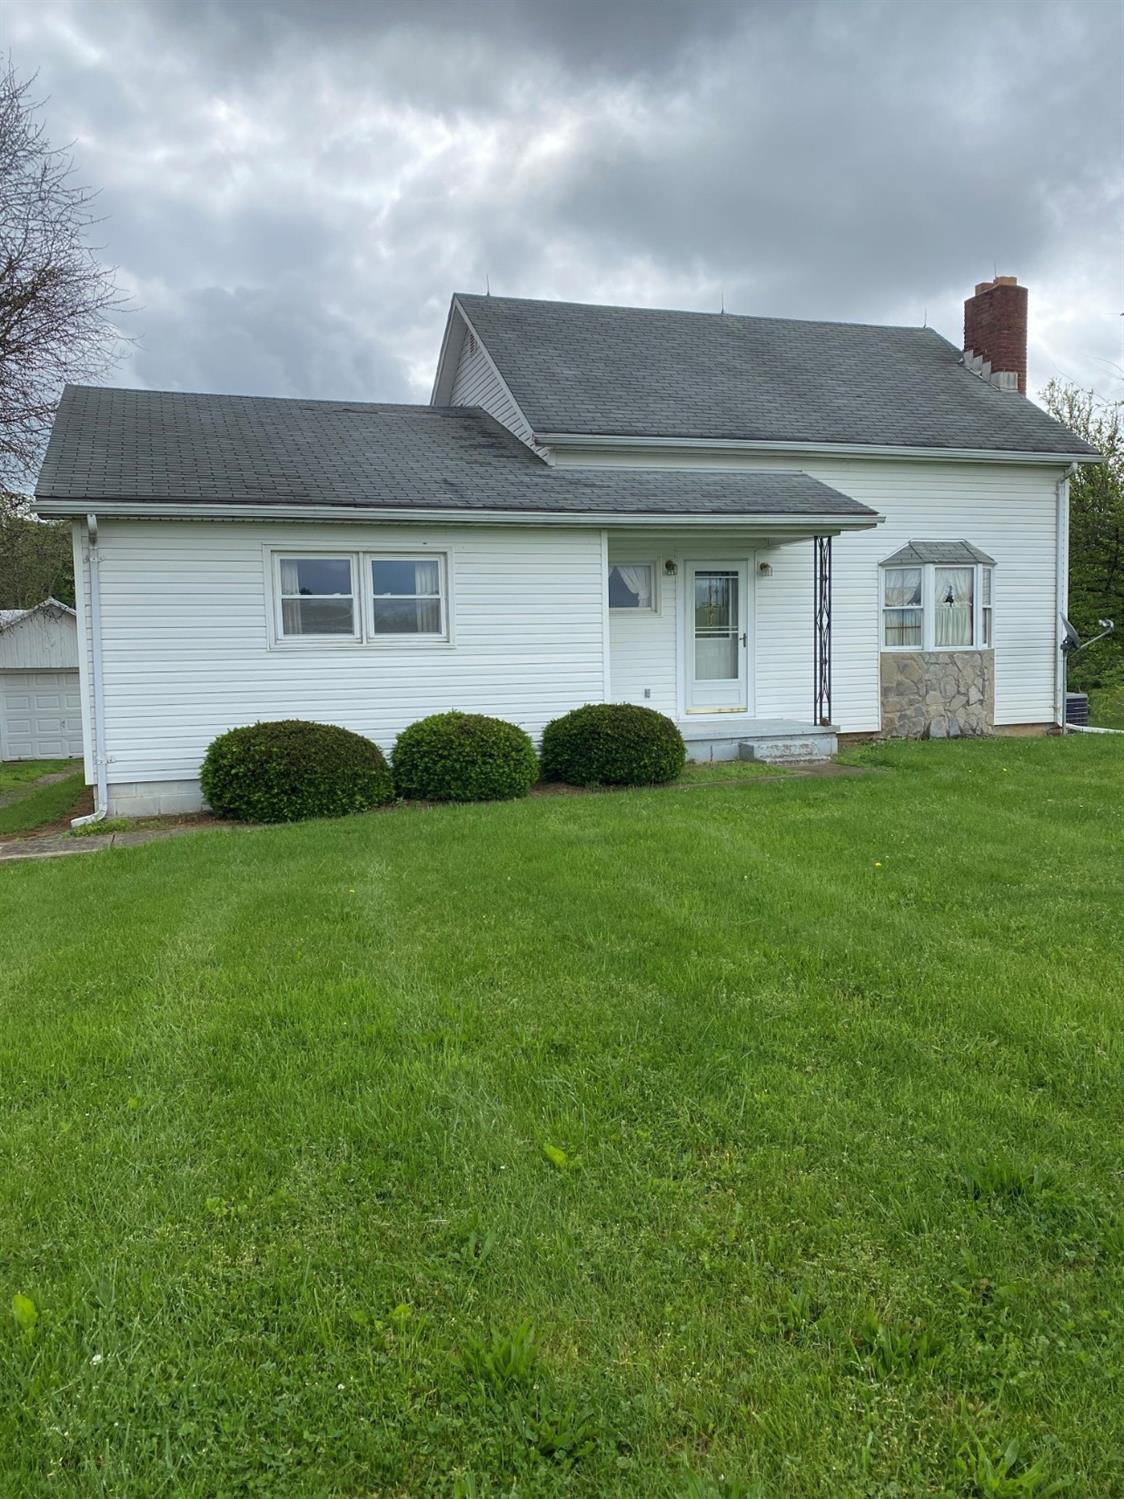 Property for sale at 8276 St Rt 753, Paint Twp,  Ohio 45123